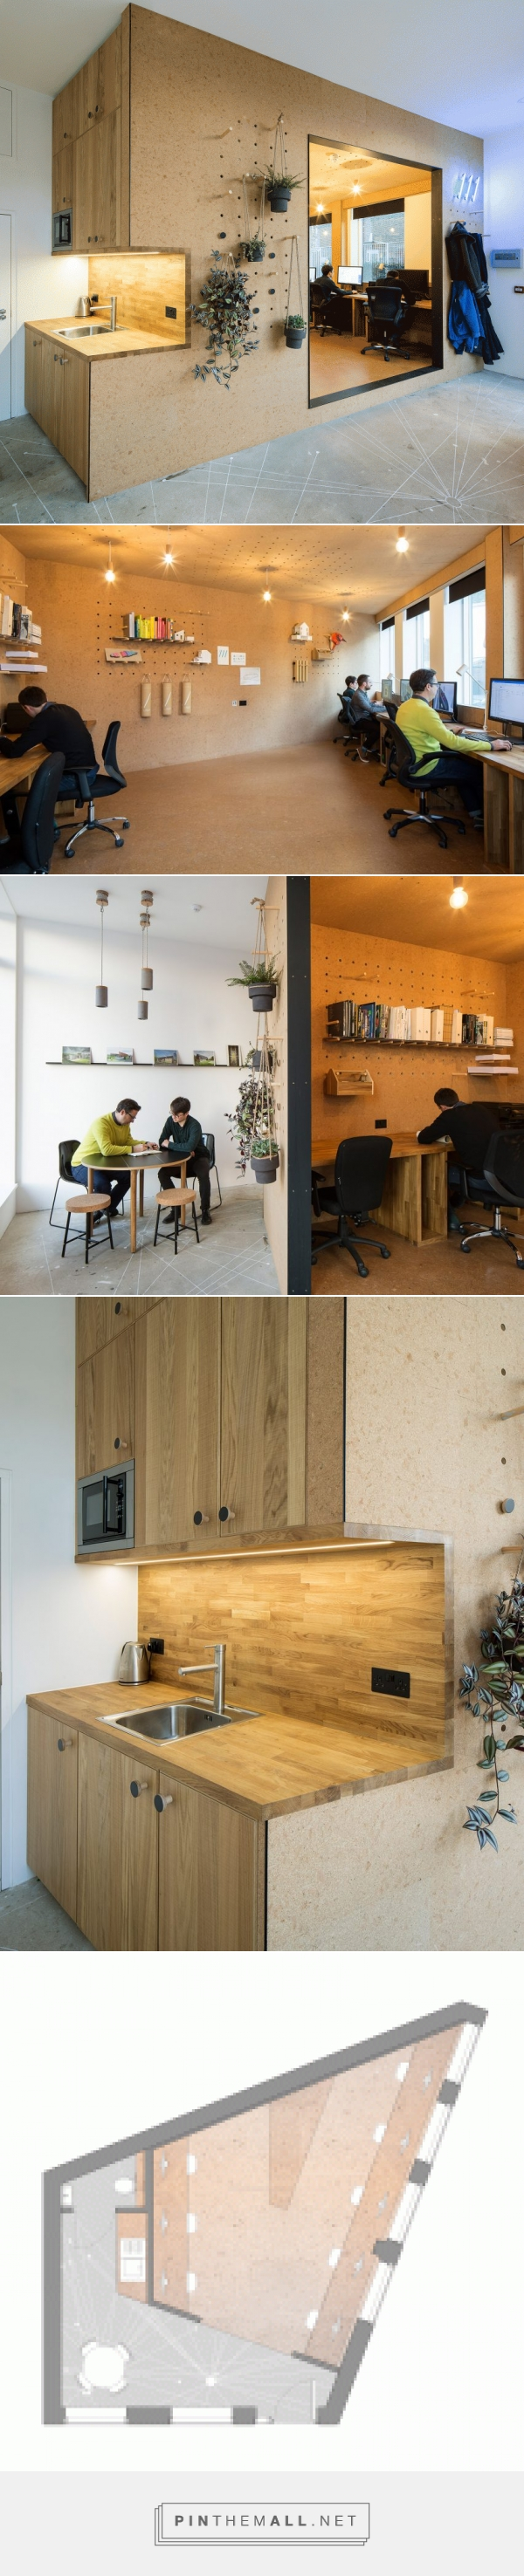 Selencky Parsons' adds cork-lined pod with pegboard walls to its own office - created via https://pinthemall.net